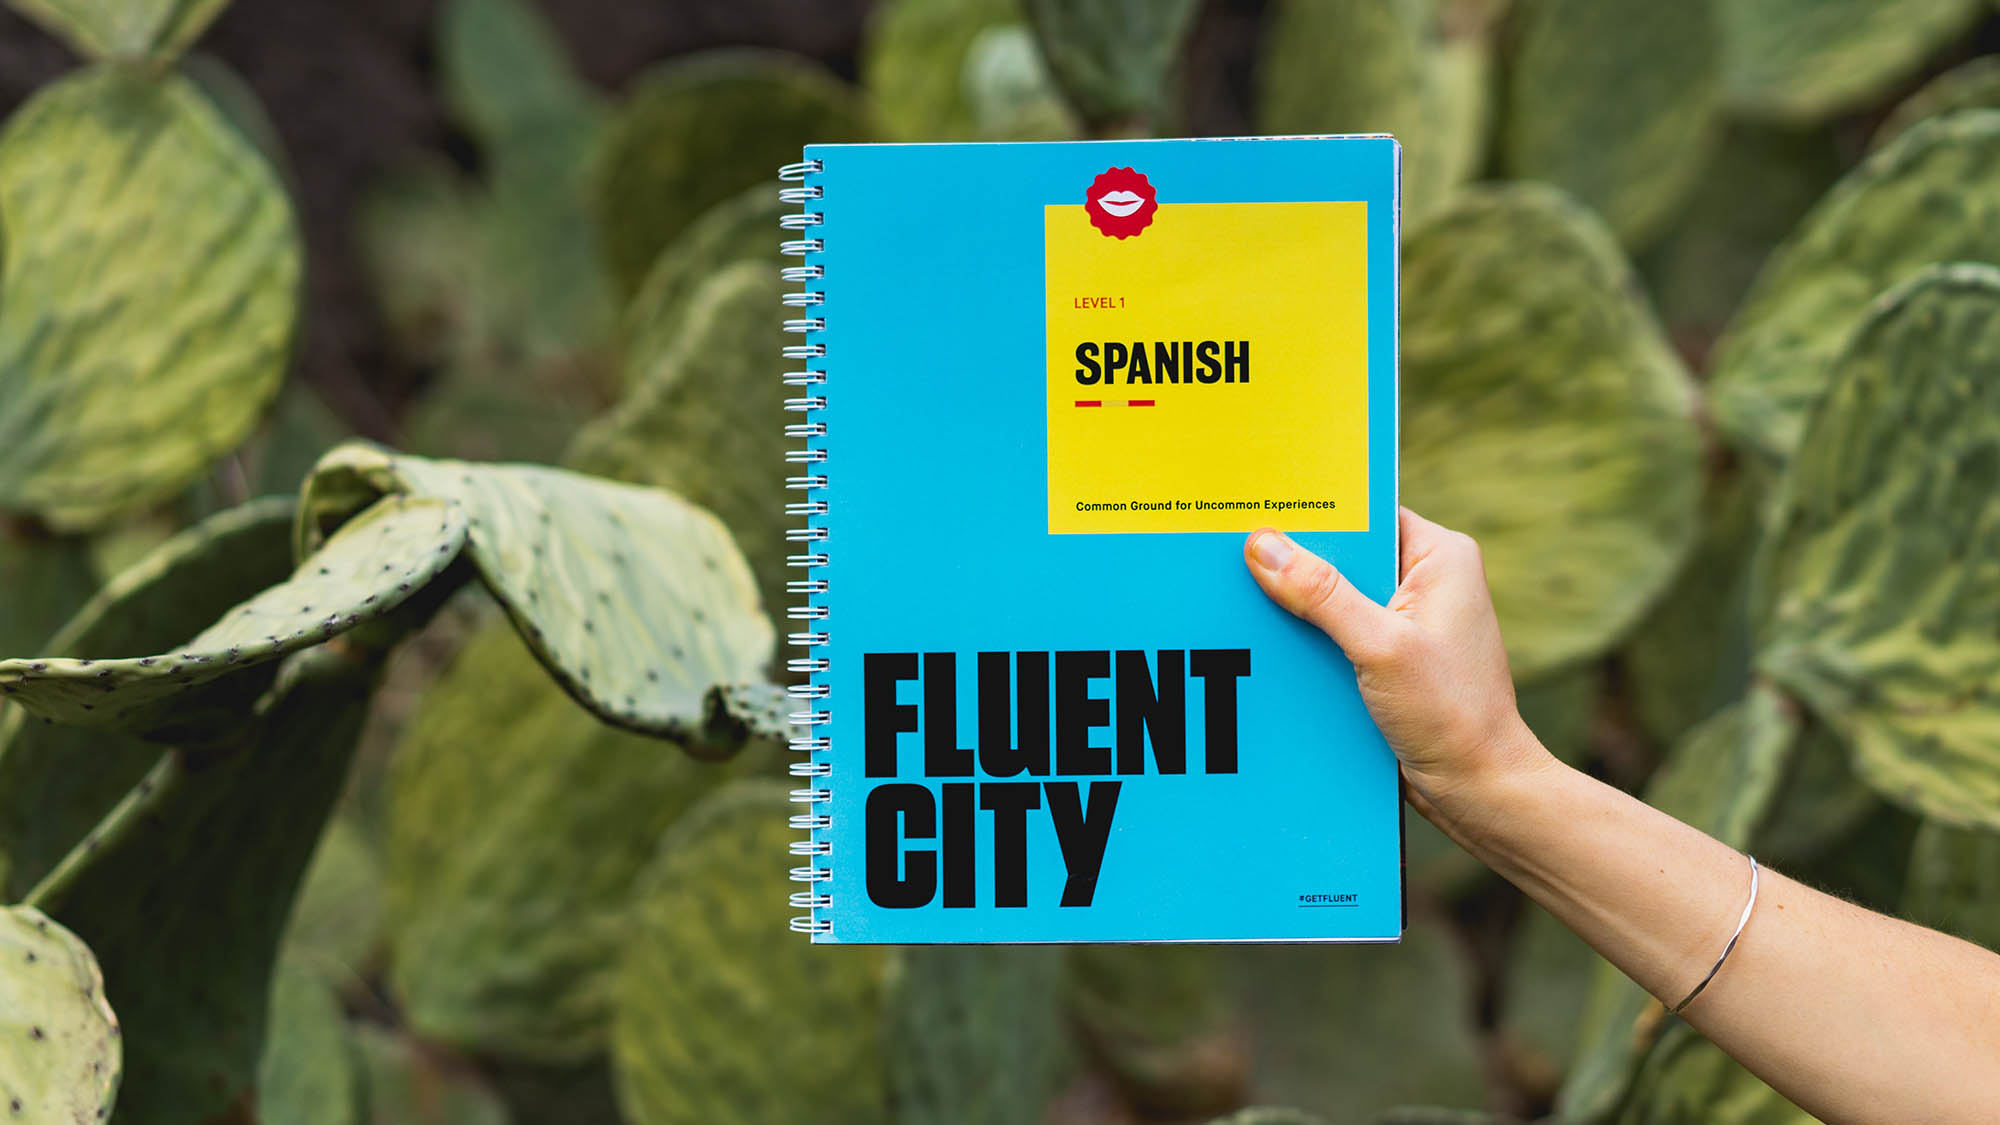 Arm Holding Blue Fluent City Spanish Language Book with Cactus Background